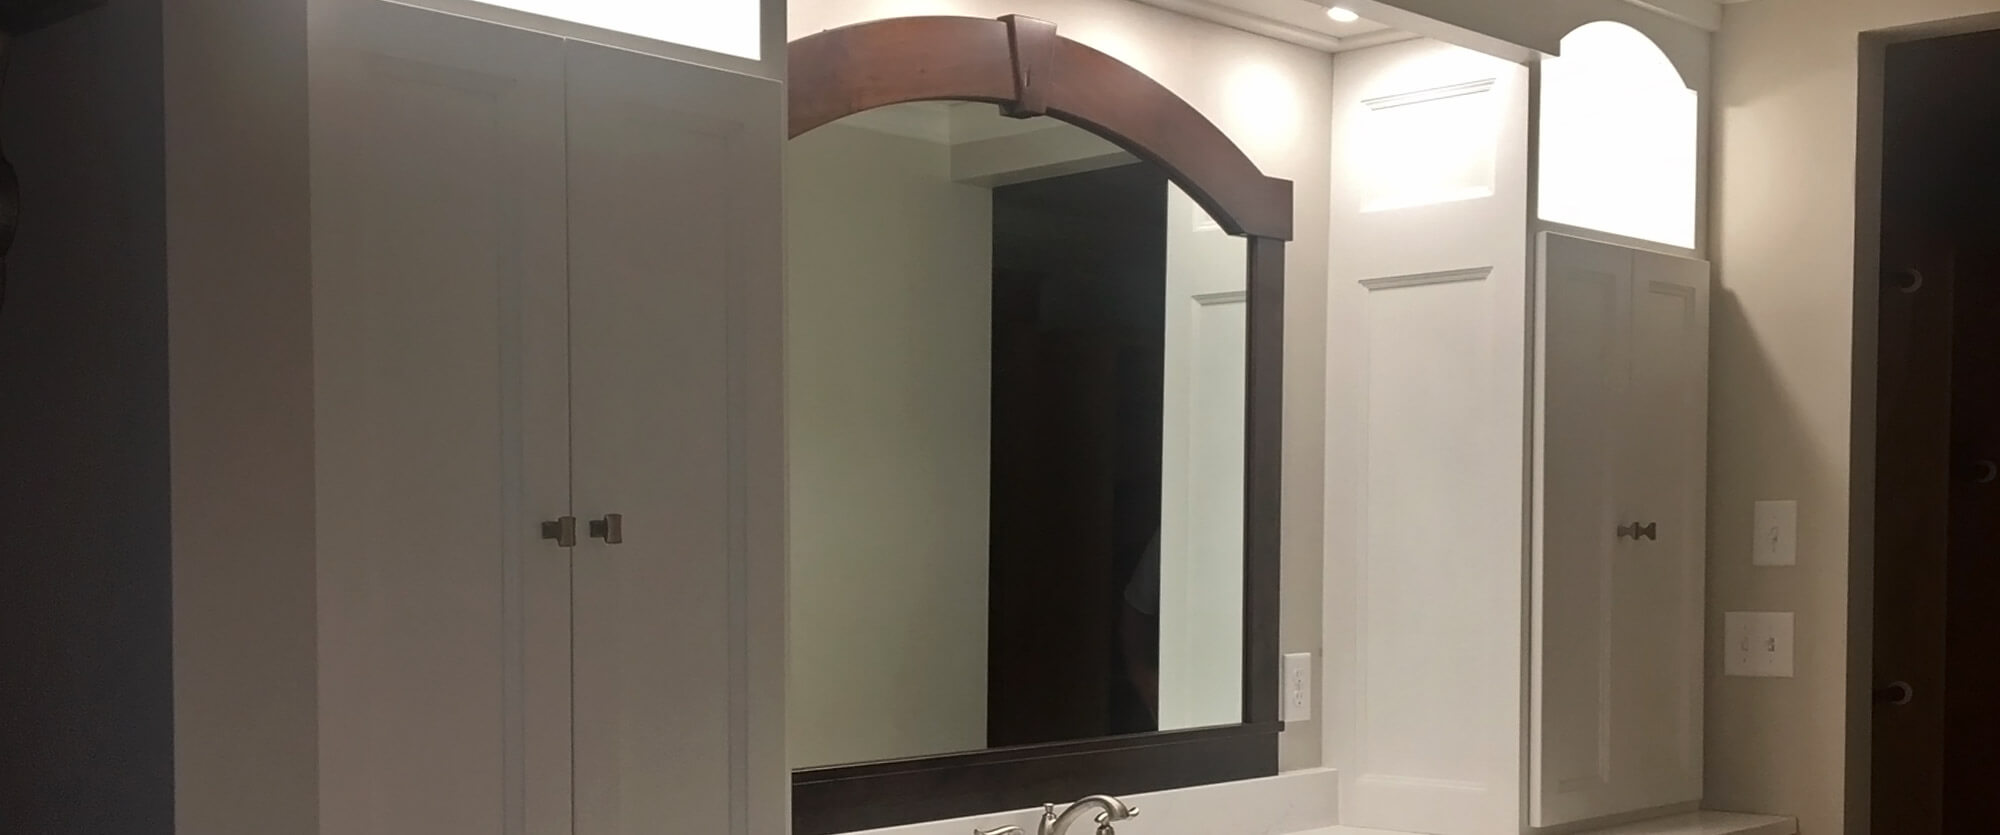 Custom bath vanity featuring upper solid wood cabinets, lighted display boxes, and a framed mirror; designed, built, and installed by finewood Structures of Browerville, MN